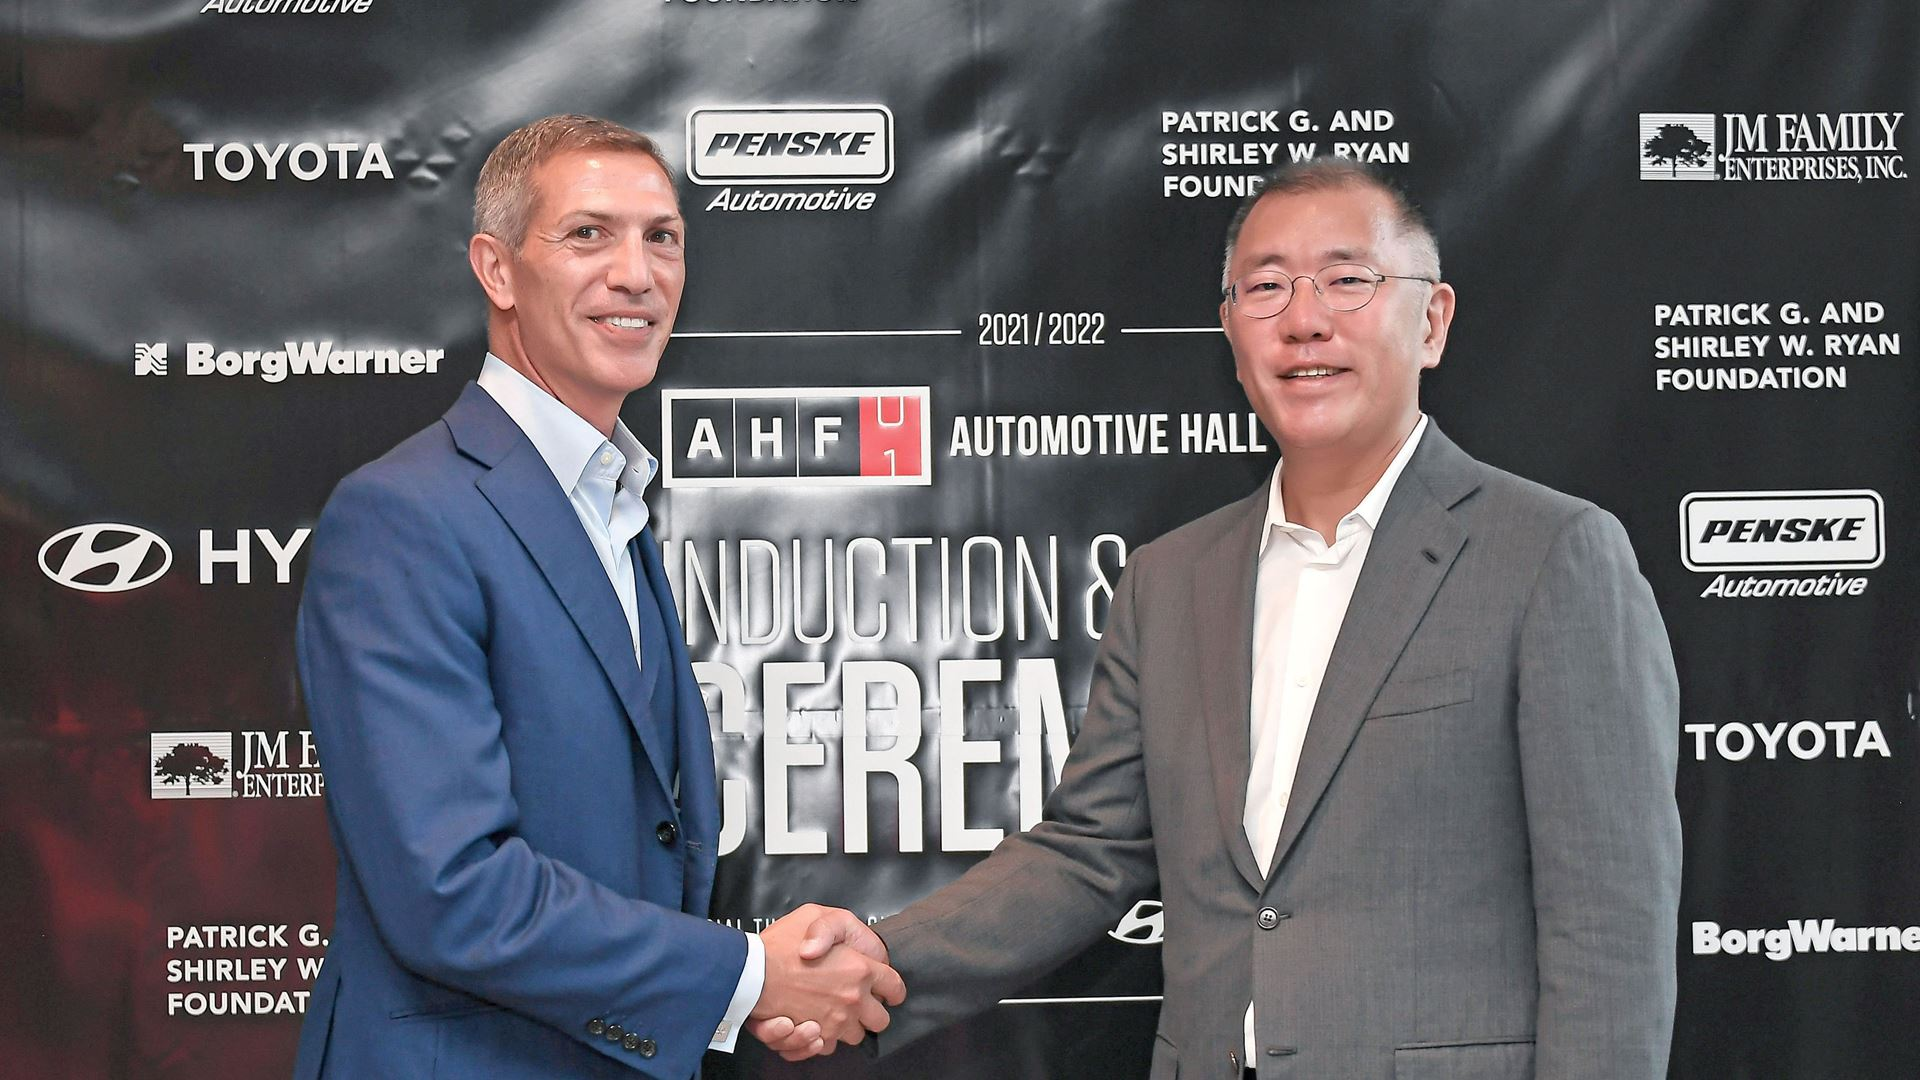 Hyundai Motor Group Honorary Chairman Mong-Koo Chung Inducted Into Automotive Hall of Fame at Official Ceremony - Image 4